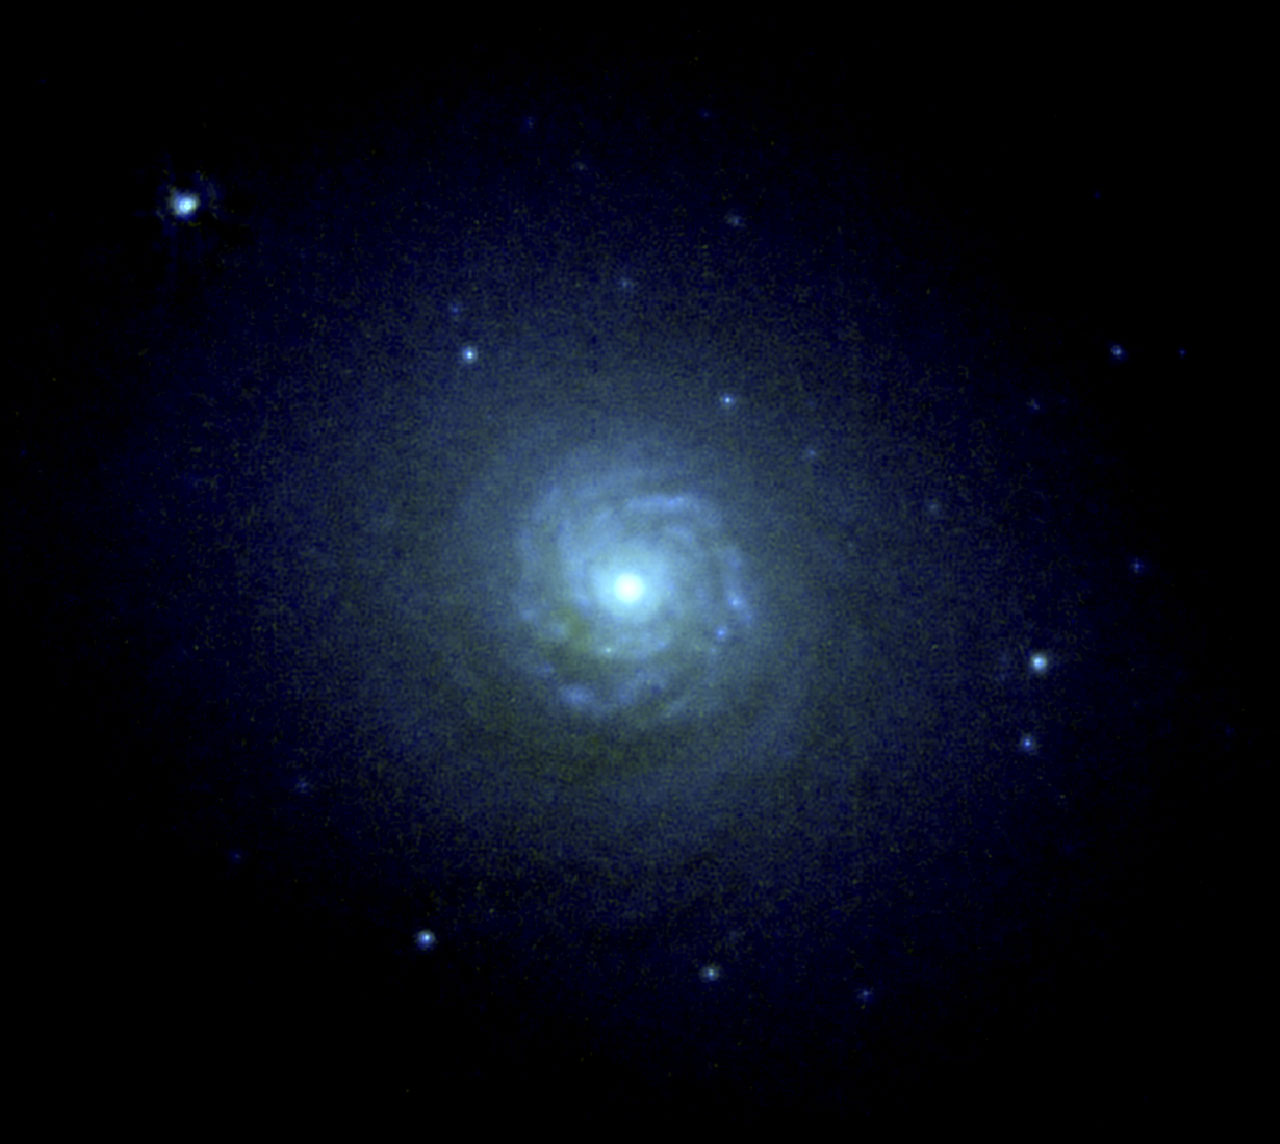 NGC 7257: Spiral Disk and Globular Star Clusters at the Core of a Colliding Galaxy